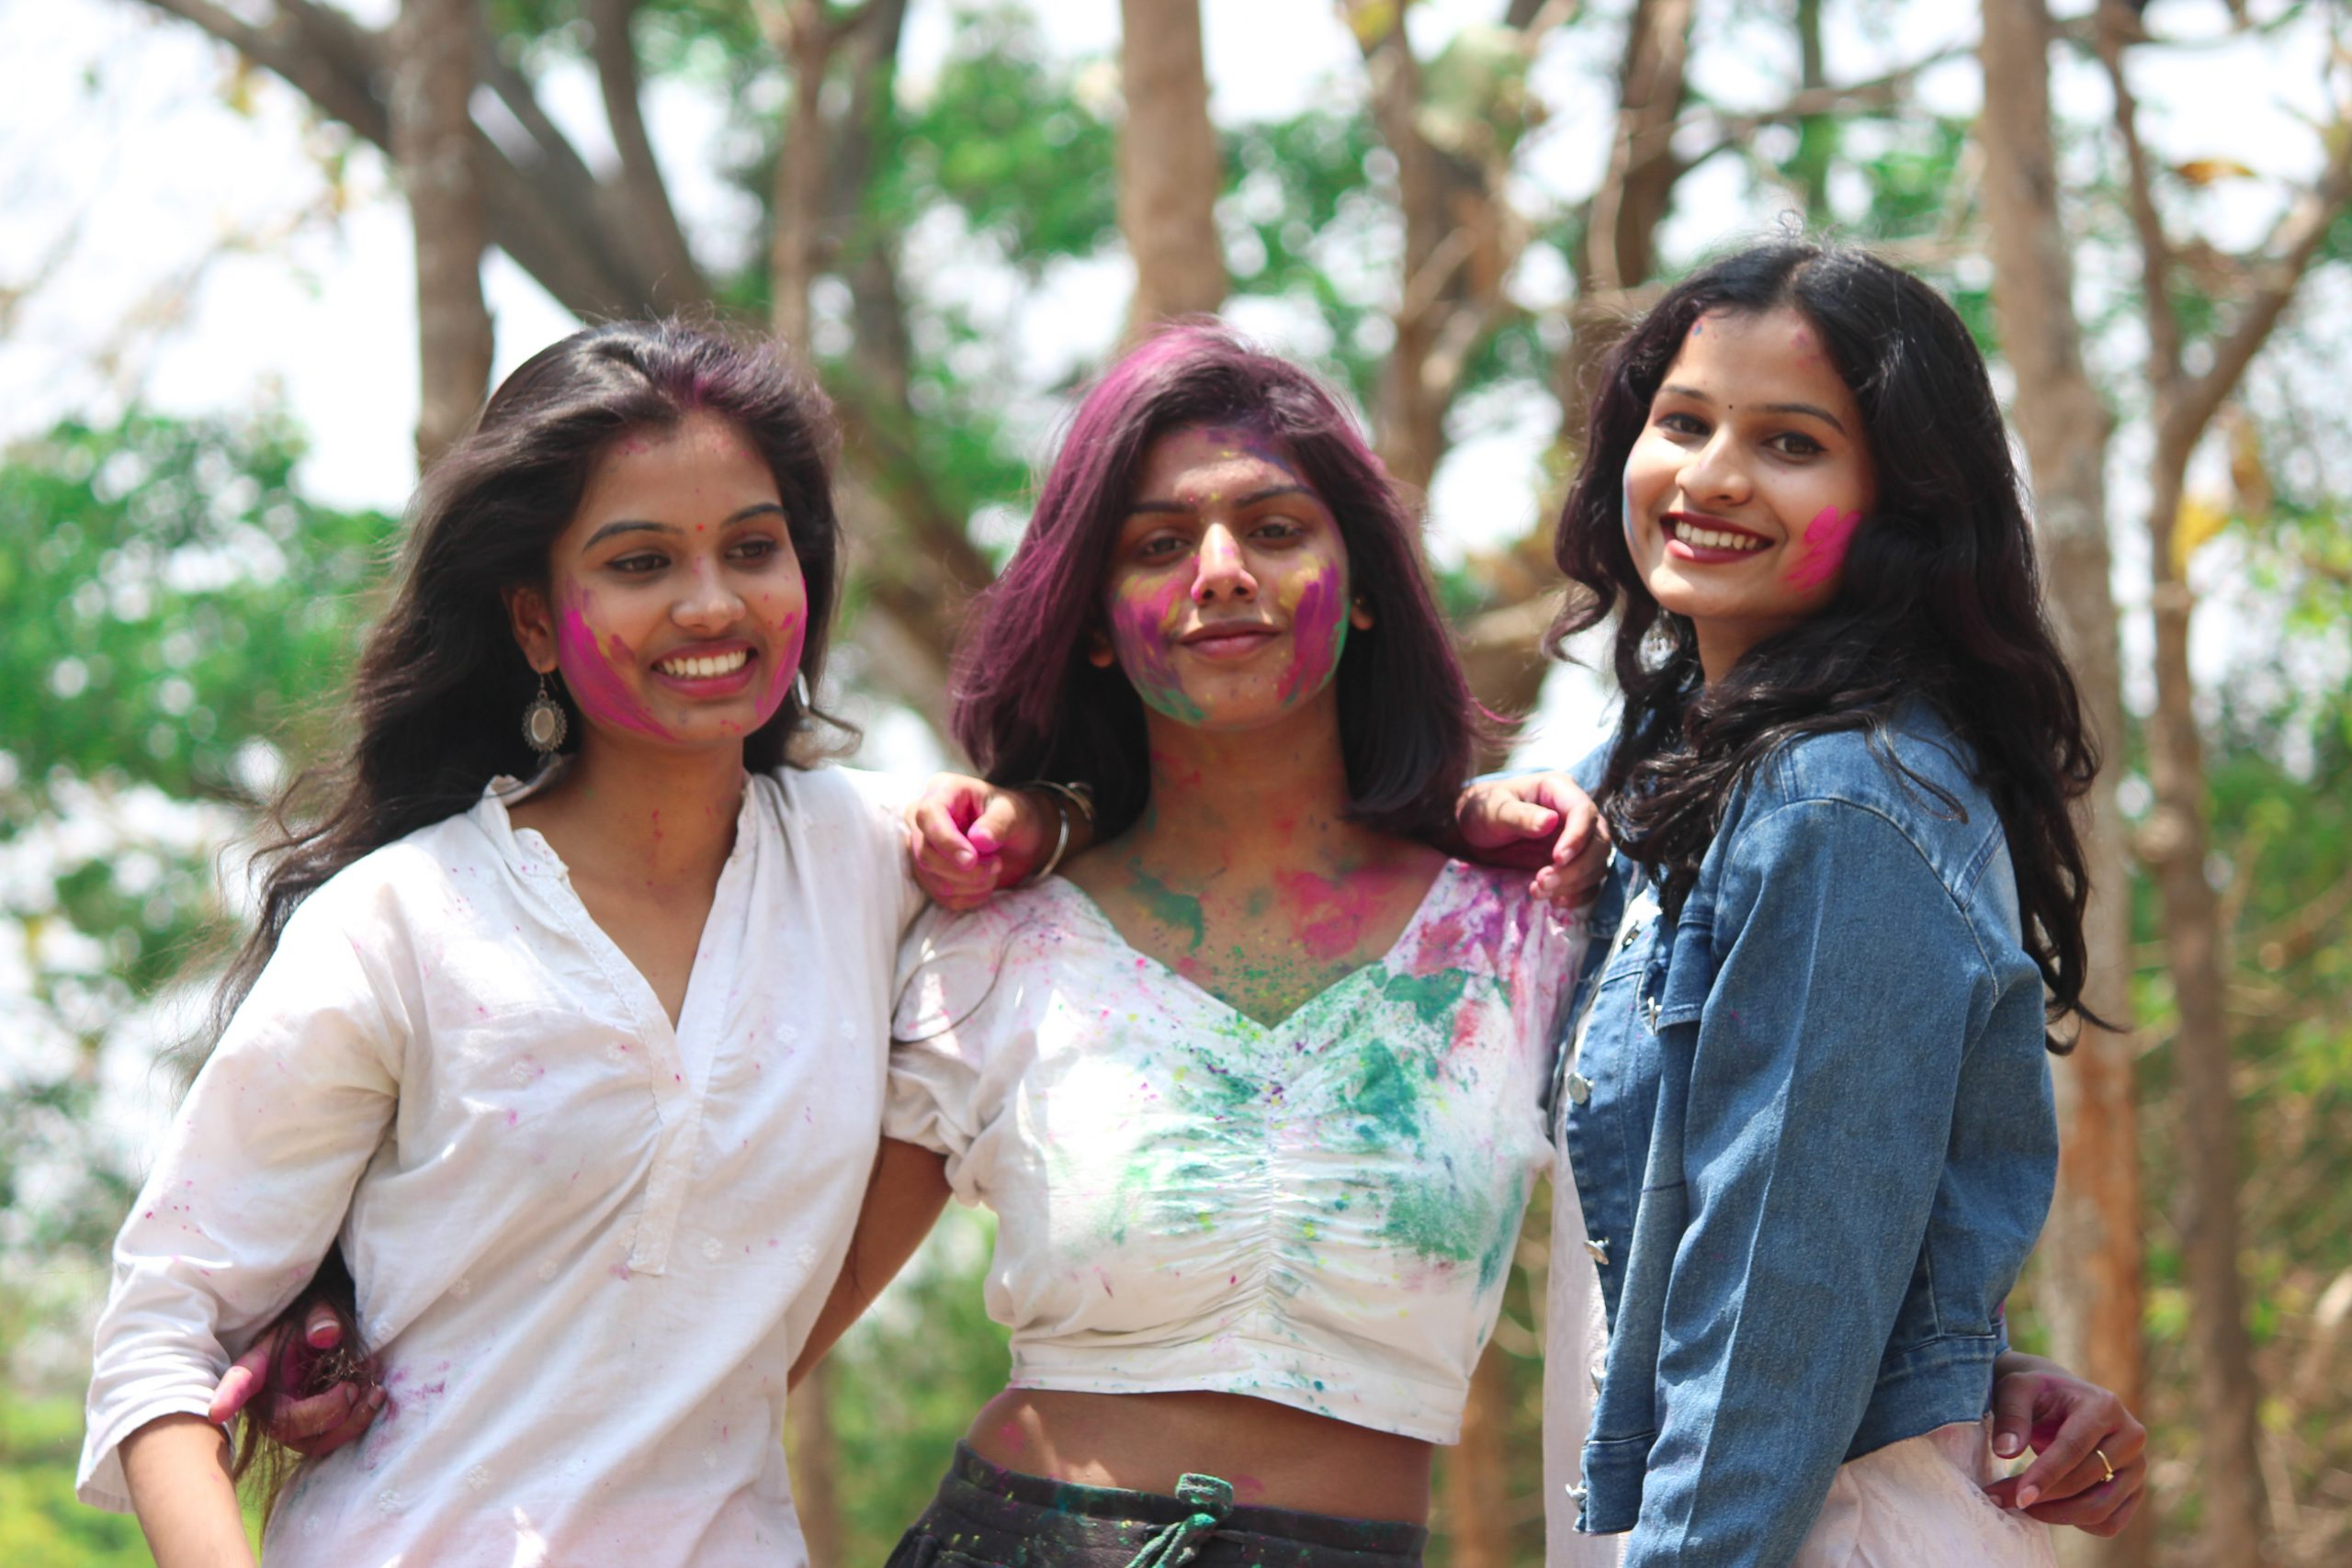 Girls posing with Holi colors